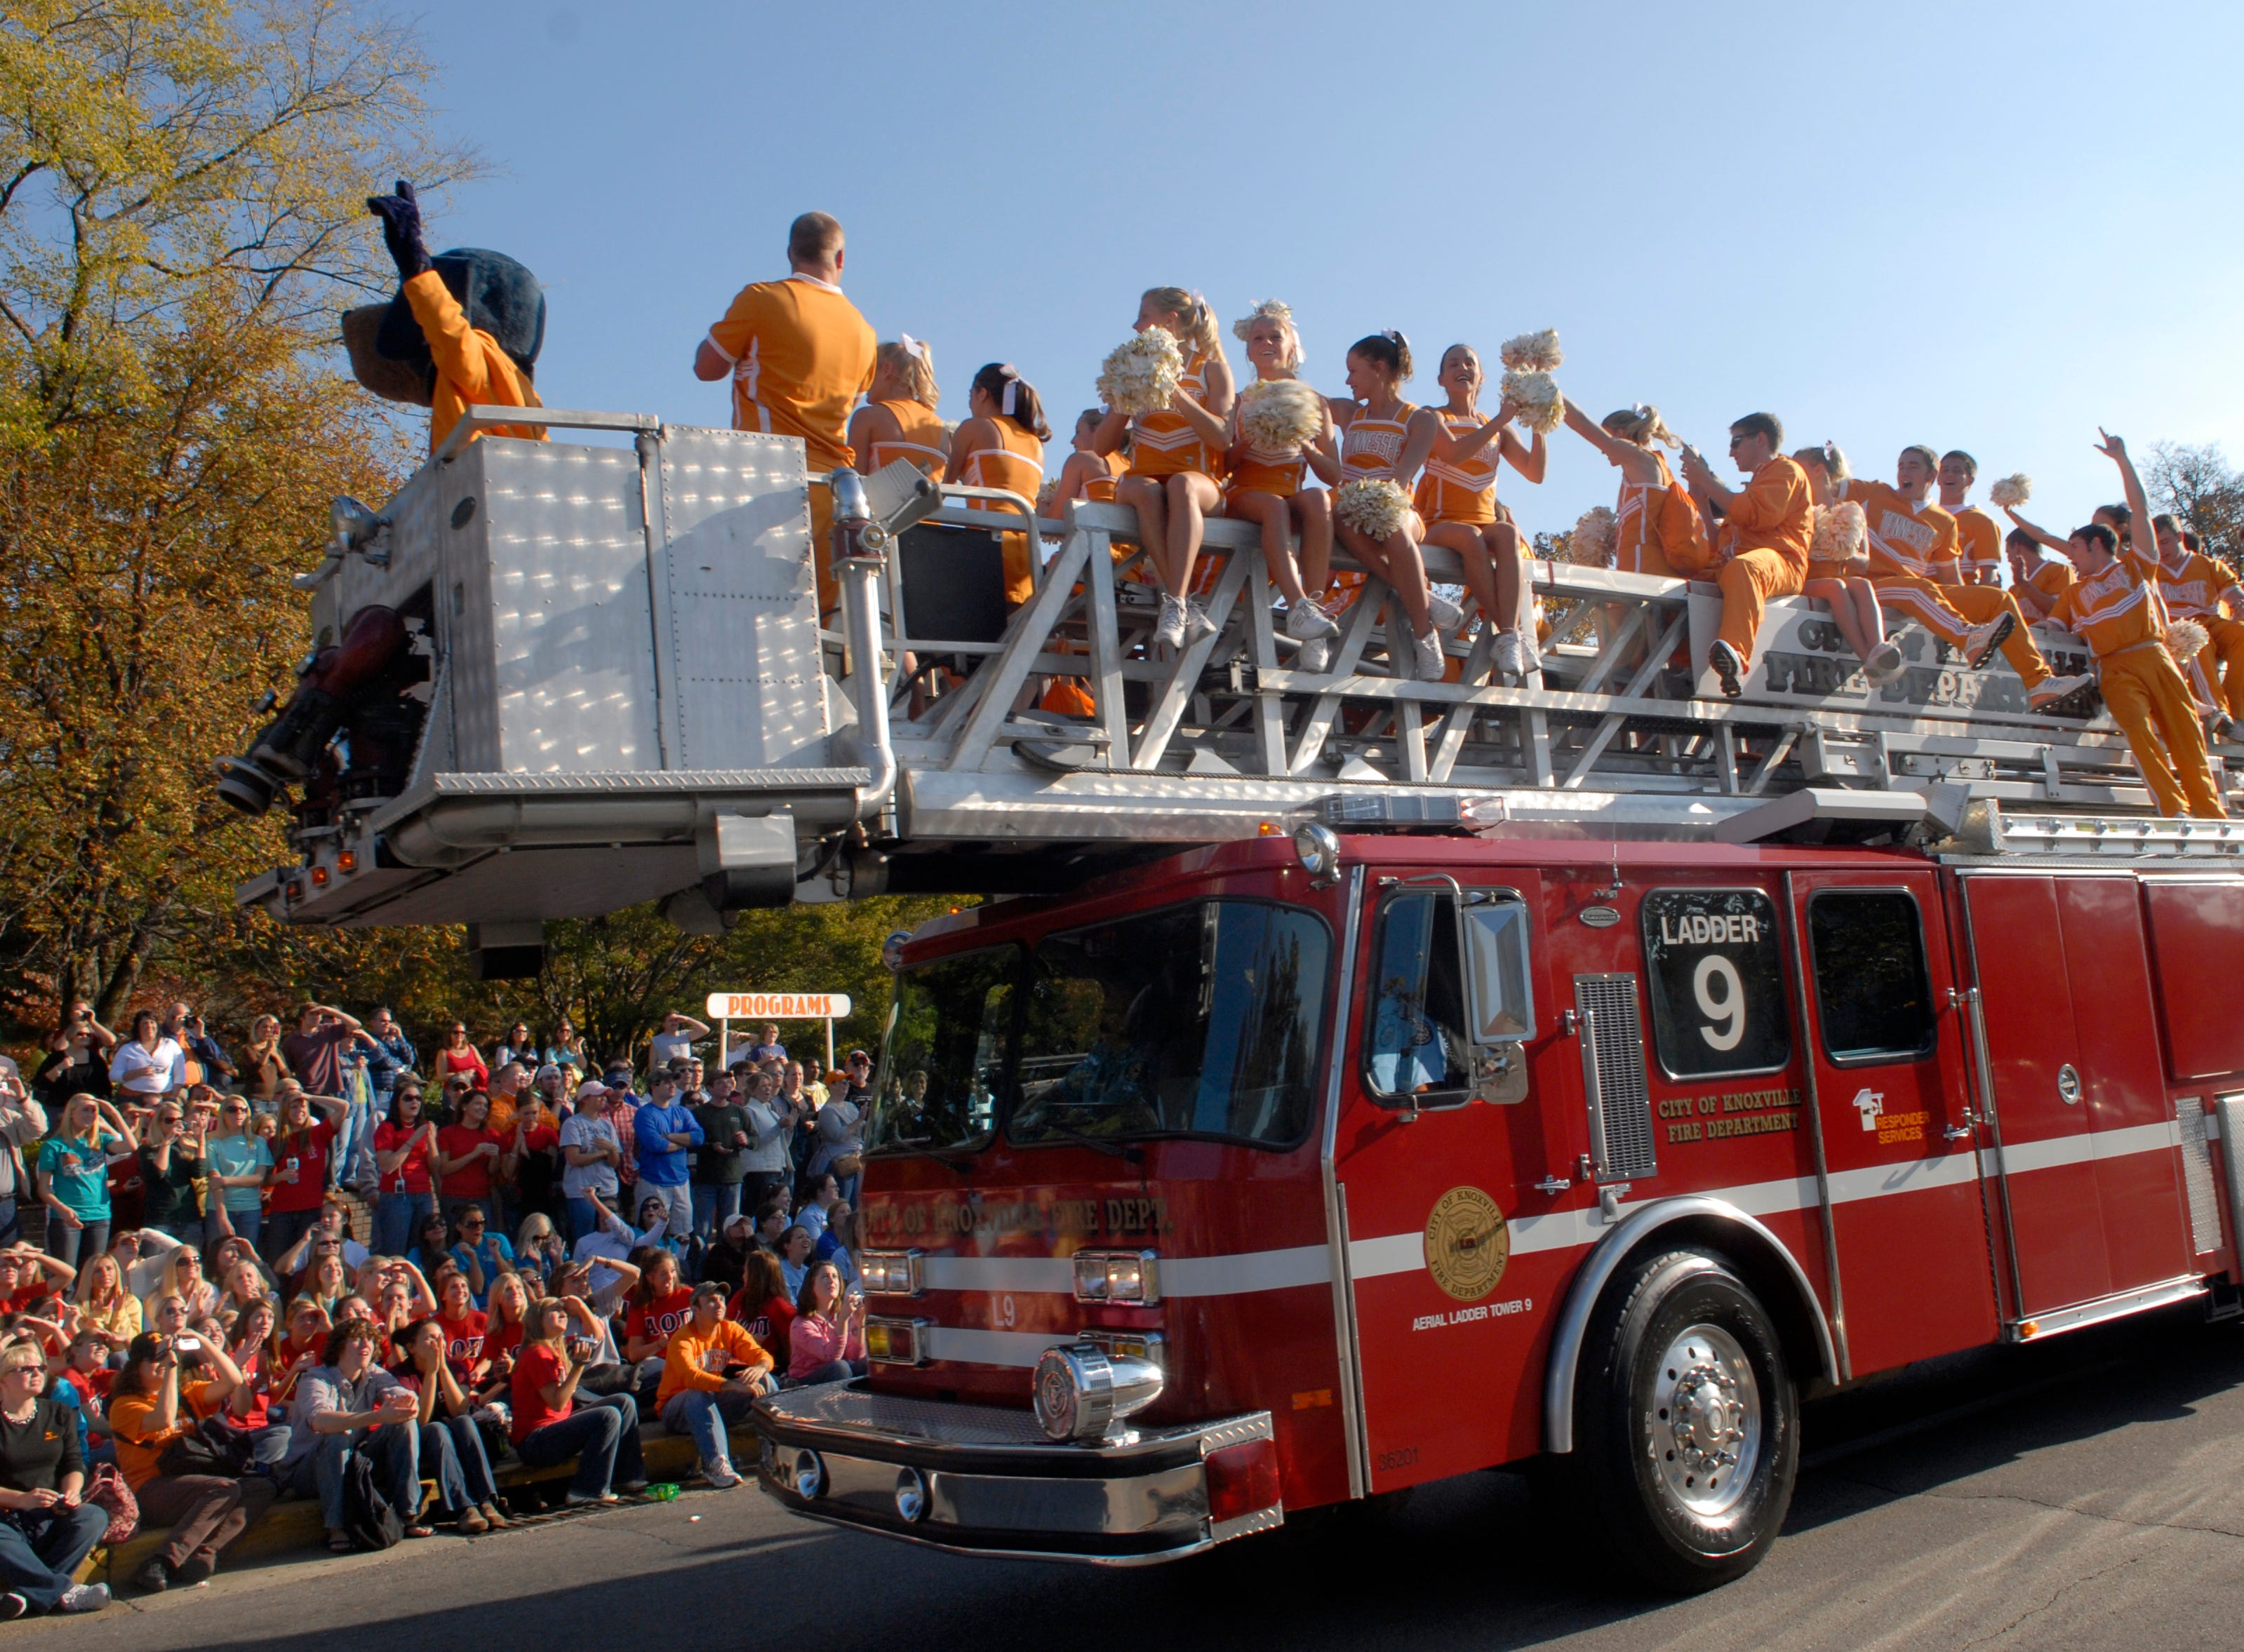 University of Tennessee cheerleaders wave to the crowd from atop a ladder truck during the UT Homecoming Parade along Volunteer Blvd, Friday. November, 2, 2007